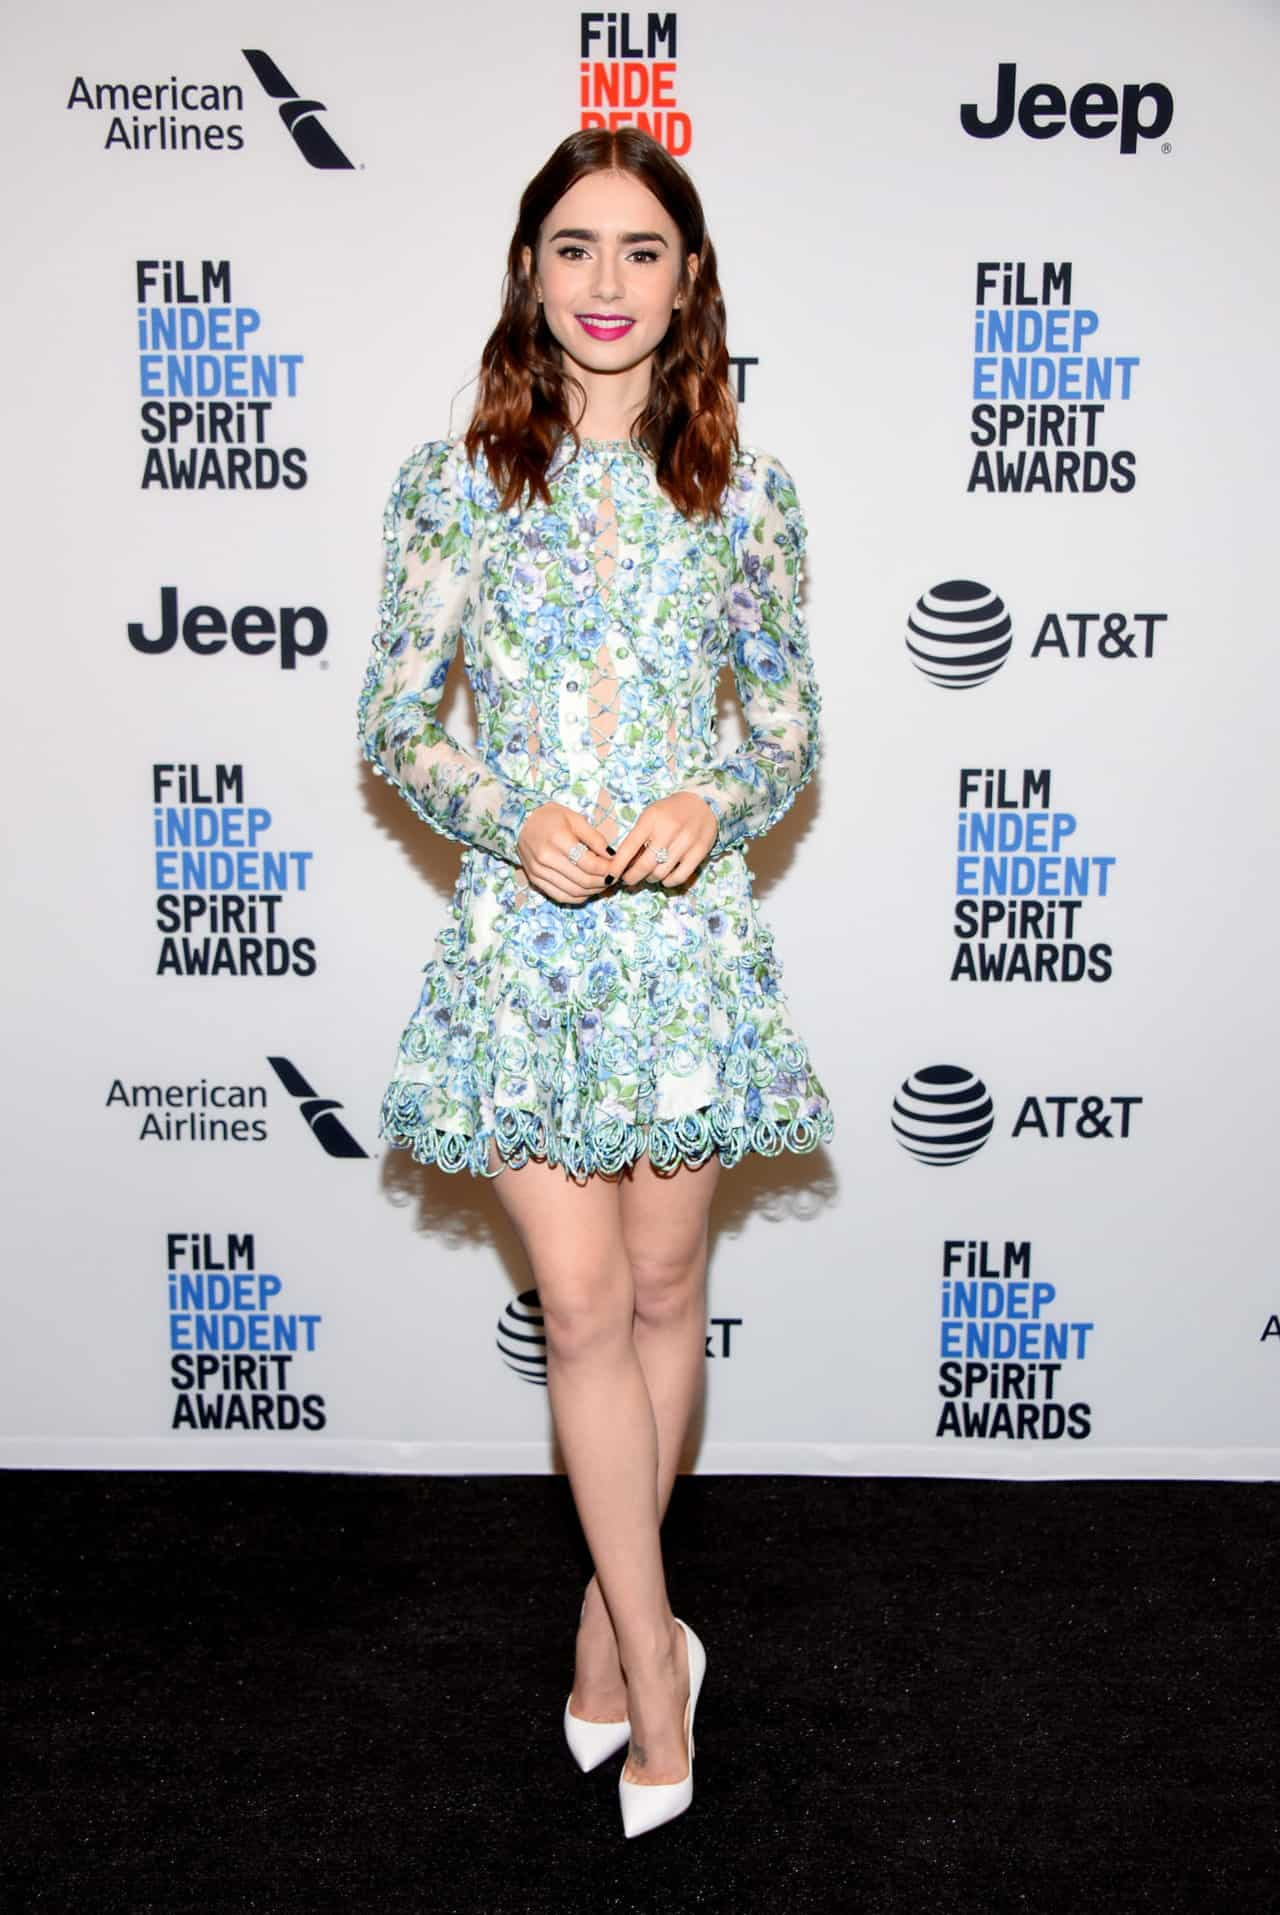 WEST HOLLYWOOD, CA - NOVEMBER 21:  Actor Lily Collins attends the Film Independent 2018 Spirit Awards press conference at The Jeremy Hotel on November 21, 2017 in West Hollywood, California.  (Photo by Araya Diaz/WireImage)